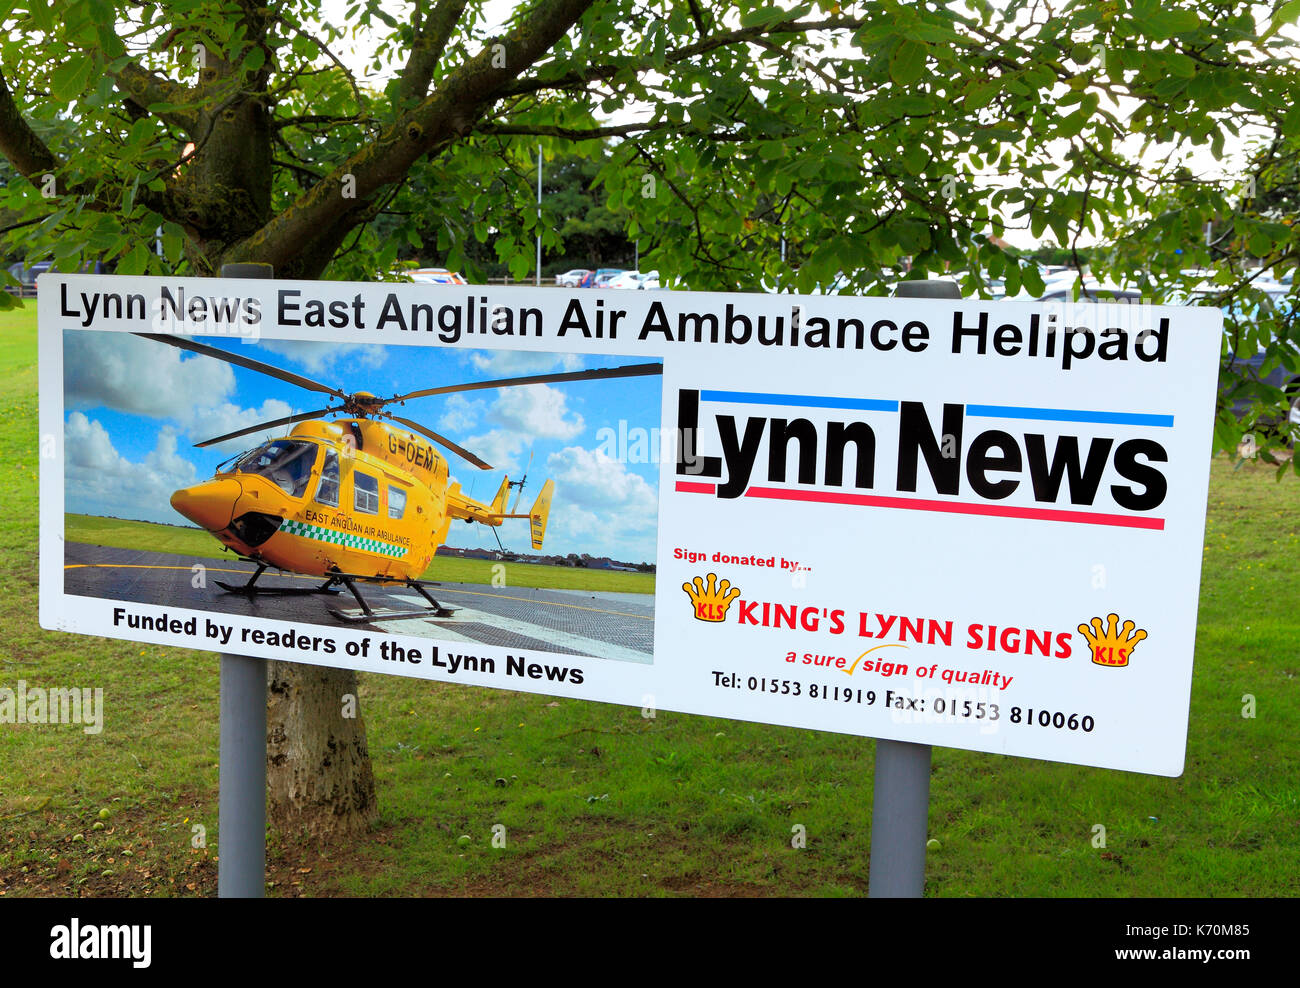 Queen Elizabeth Hospital, Helicopter, Helipdad, Air Ambulance Service, Kings Lynn, Norfolk, England, UK sign, sponsored by Lynn News - Stock Image